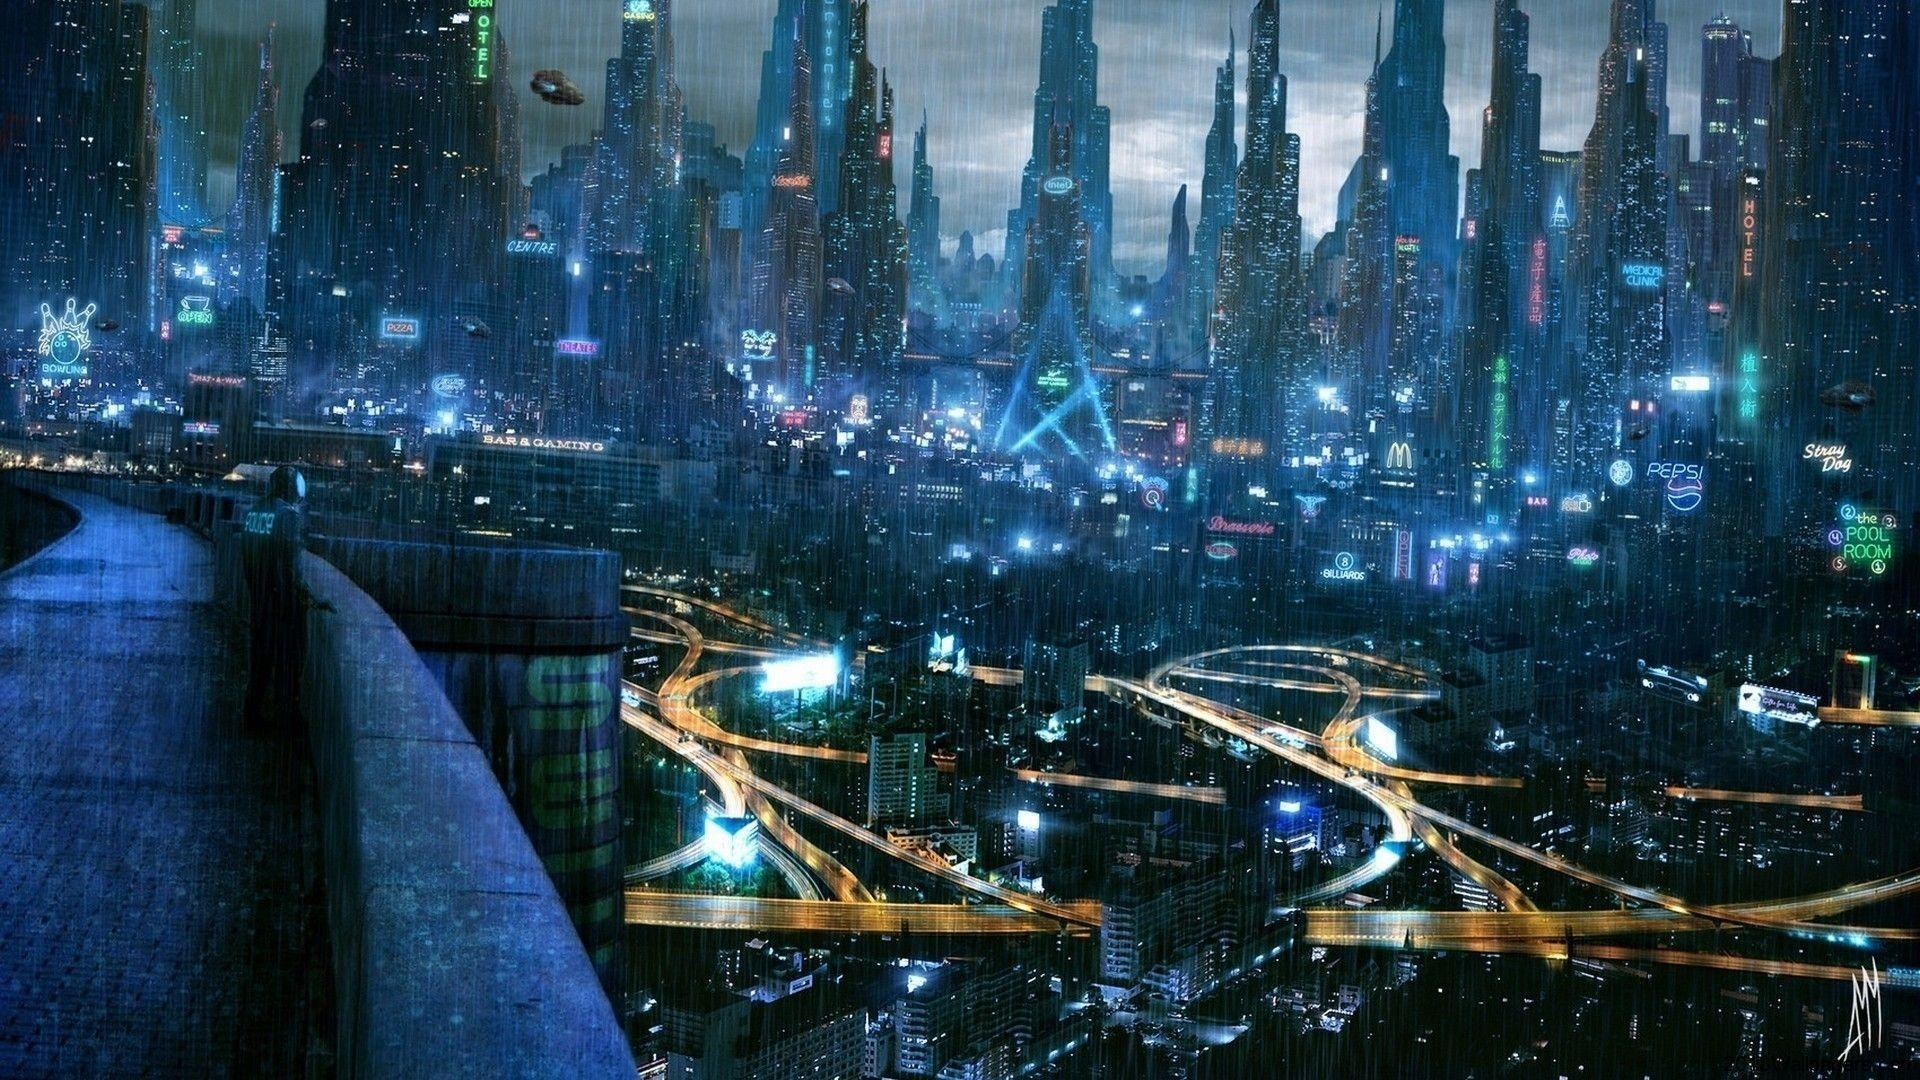 future city wallpapers - wallpaper cave